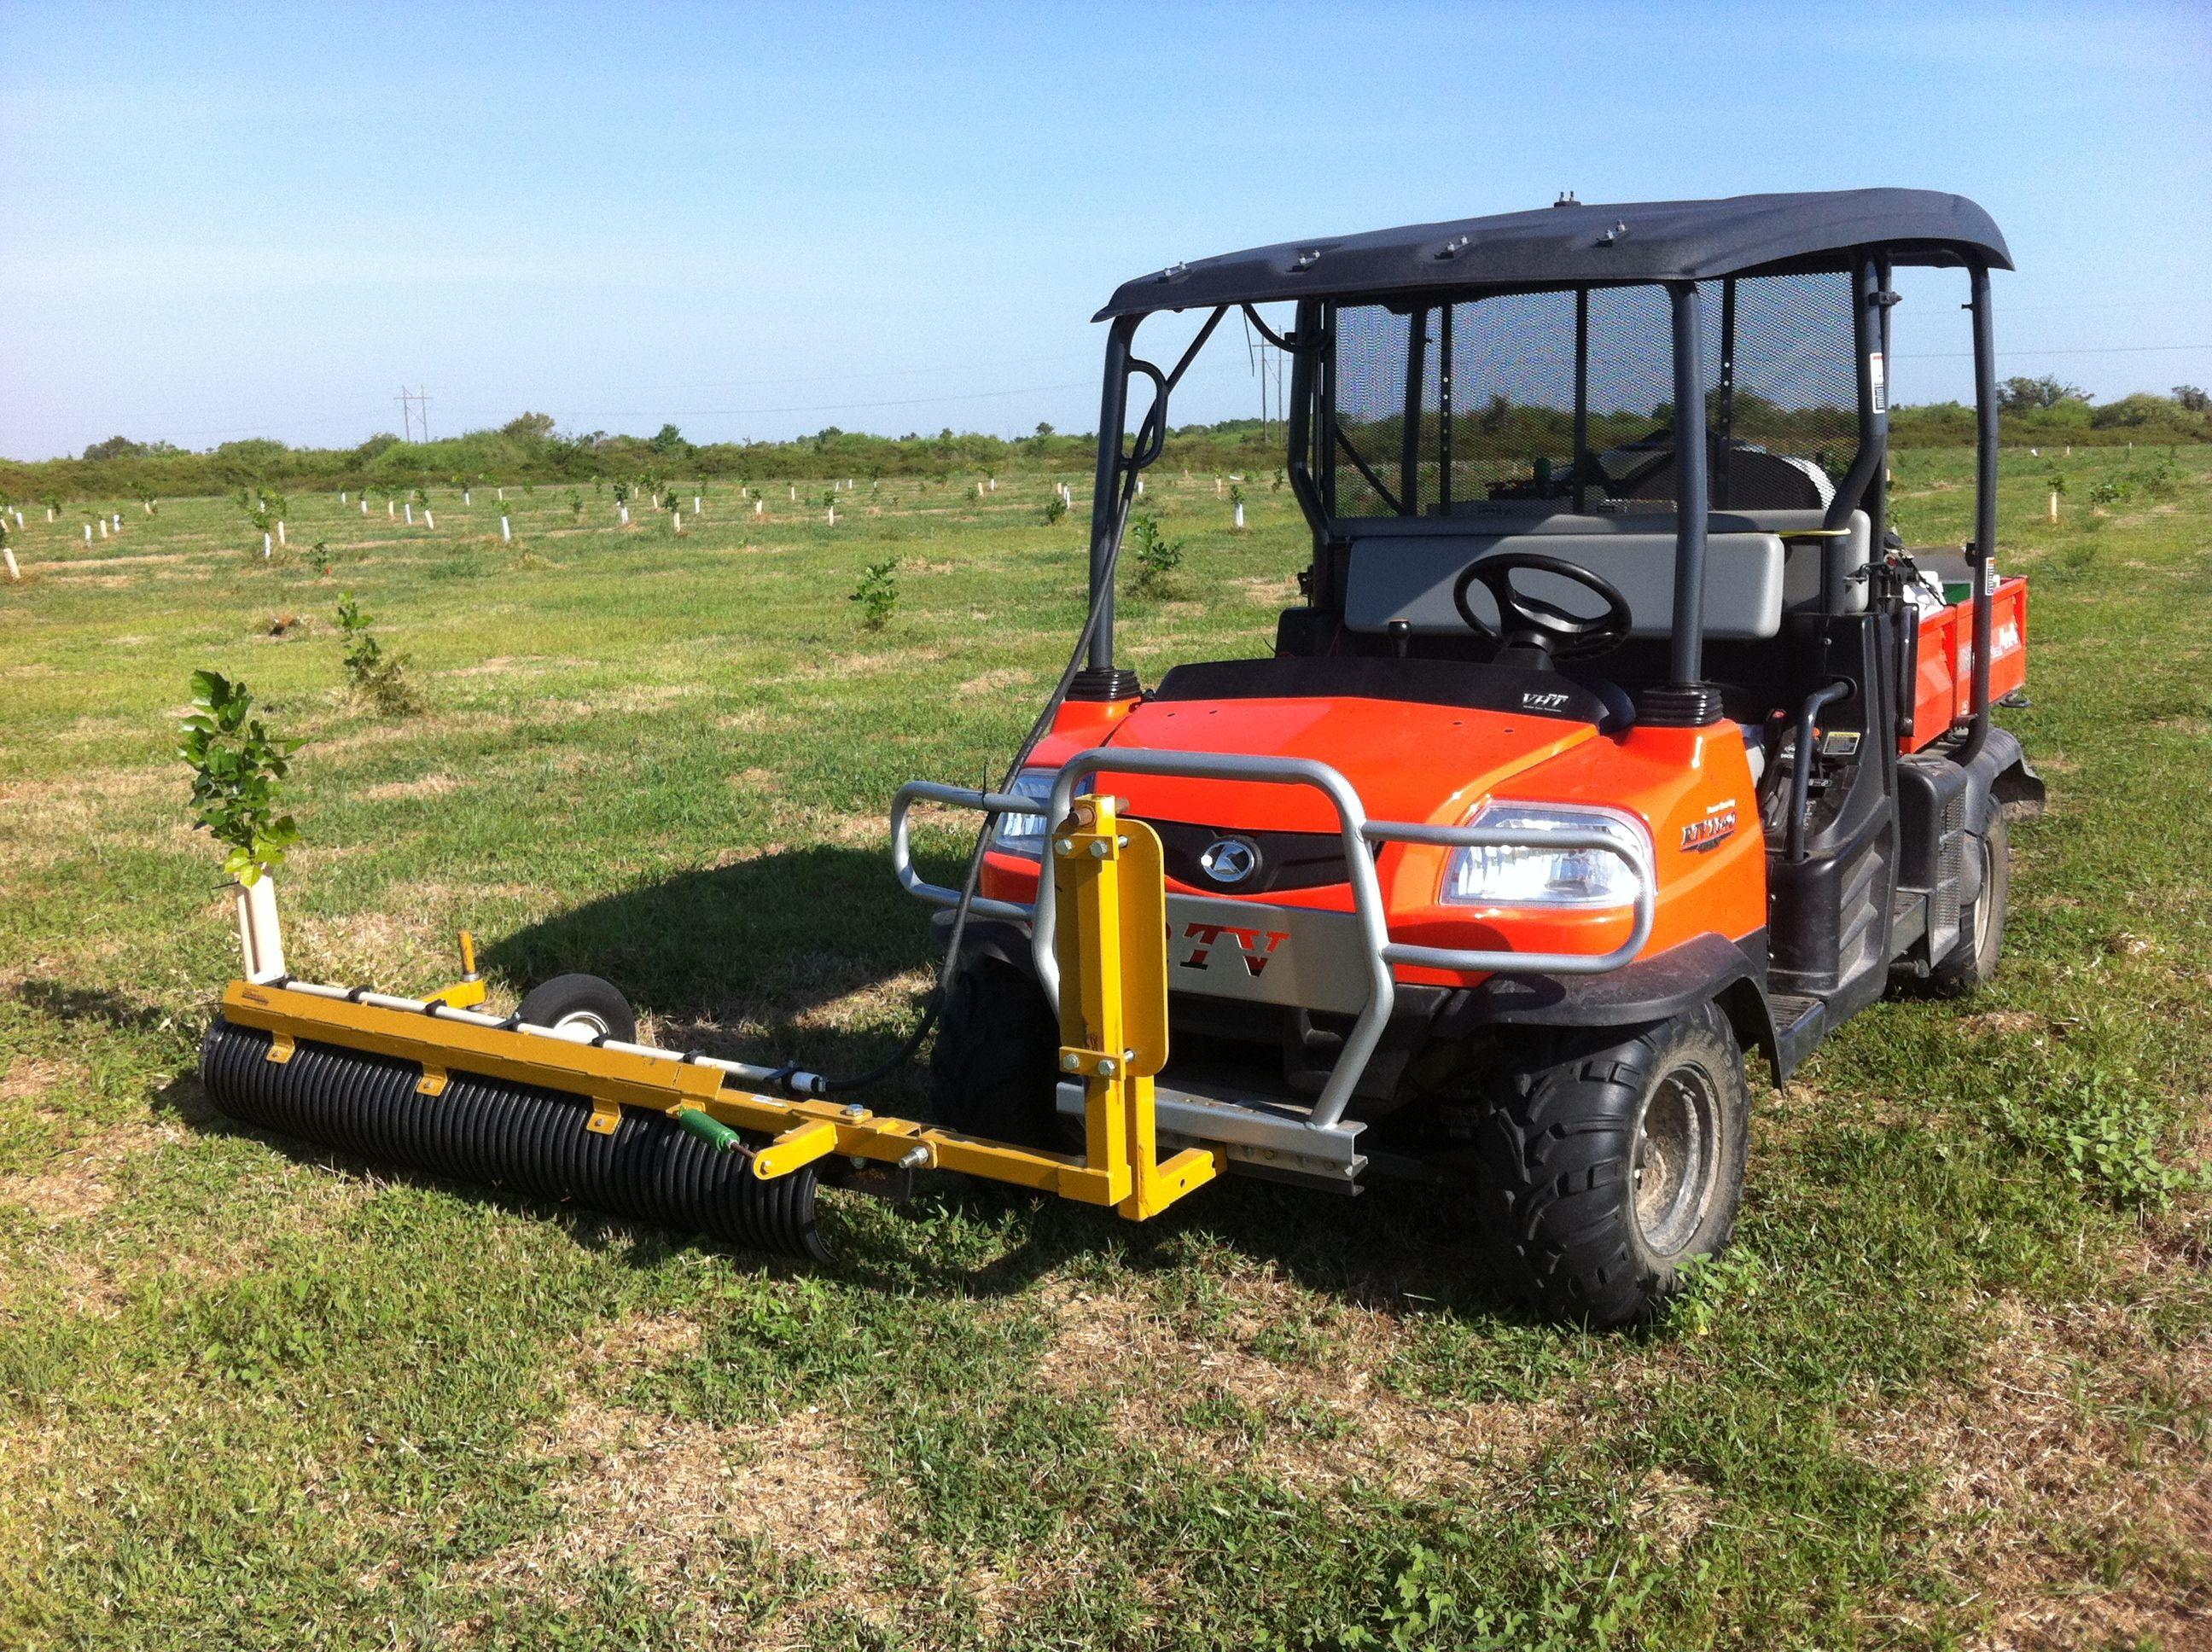 agricultural herbicide sprayer applications - Google Search